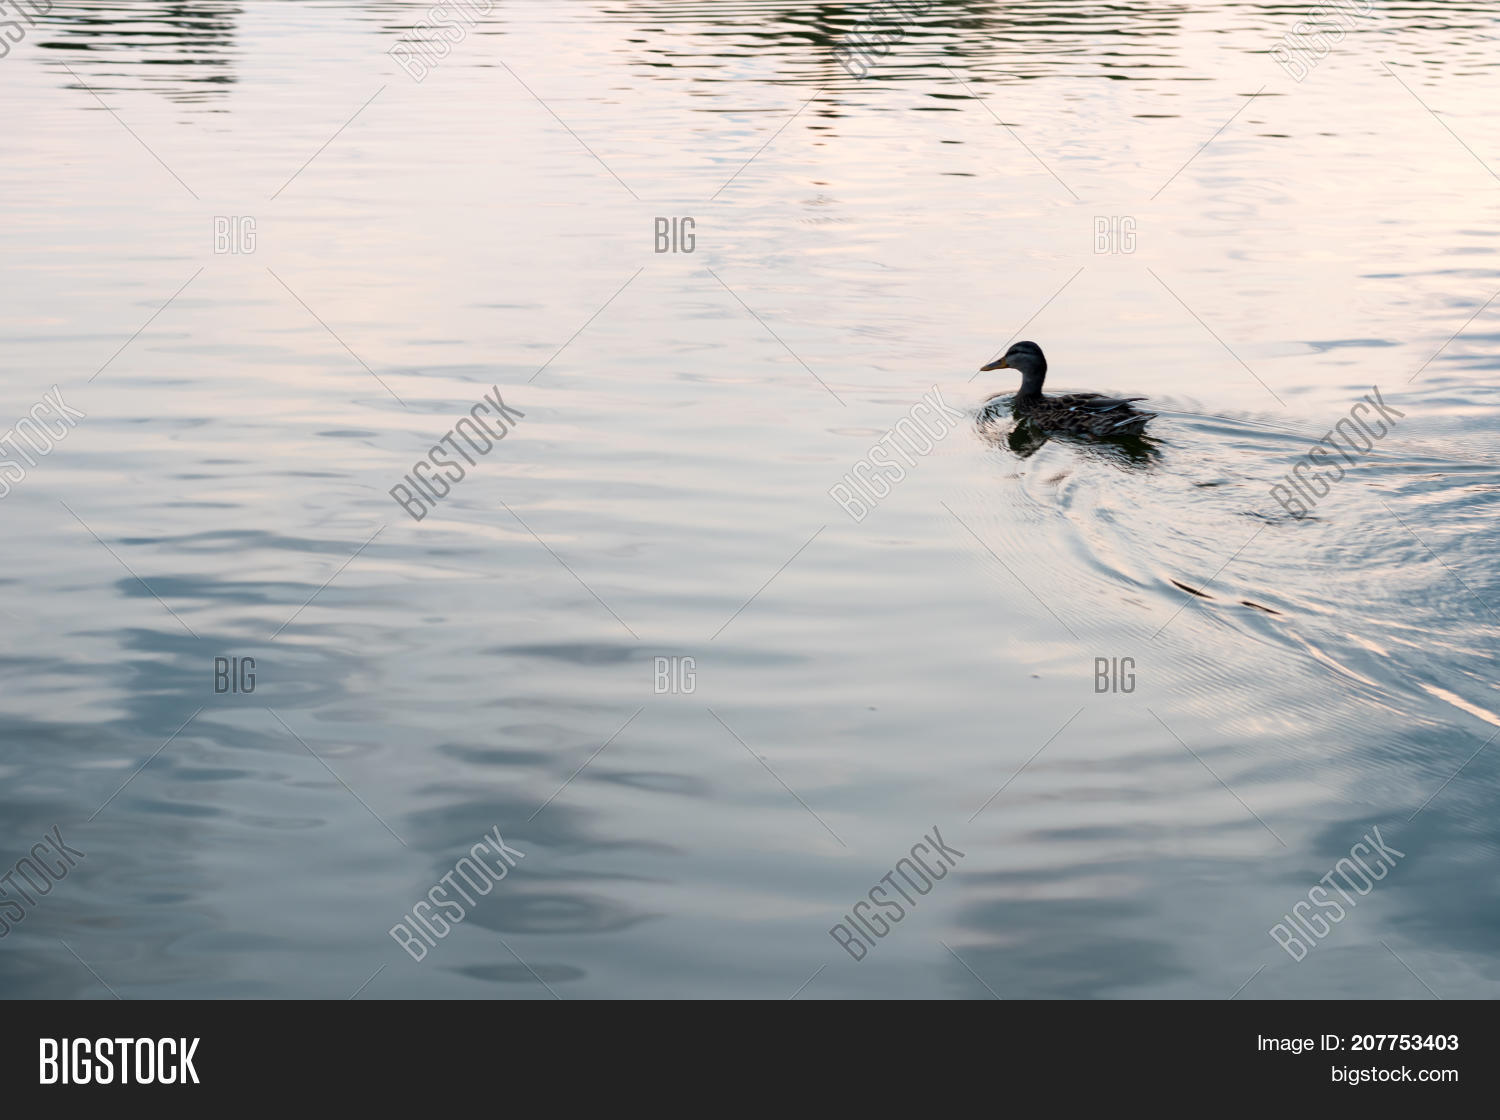 Duck swimming on water. Silhouette. Reflections on water surface.